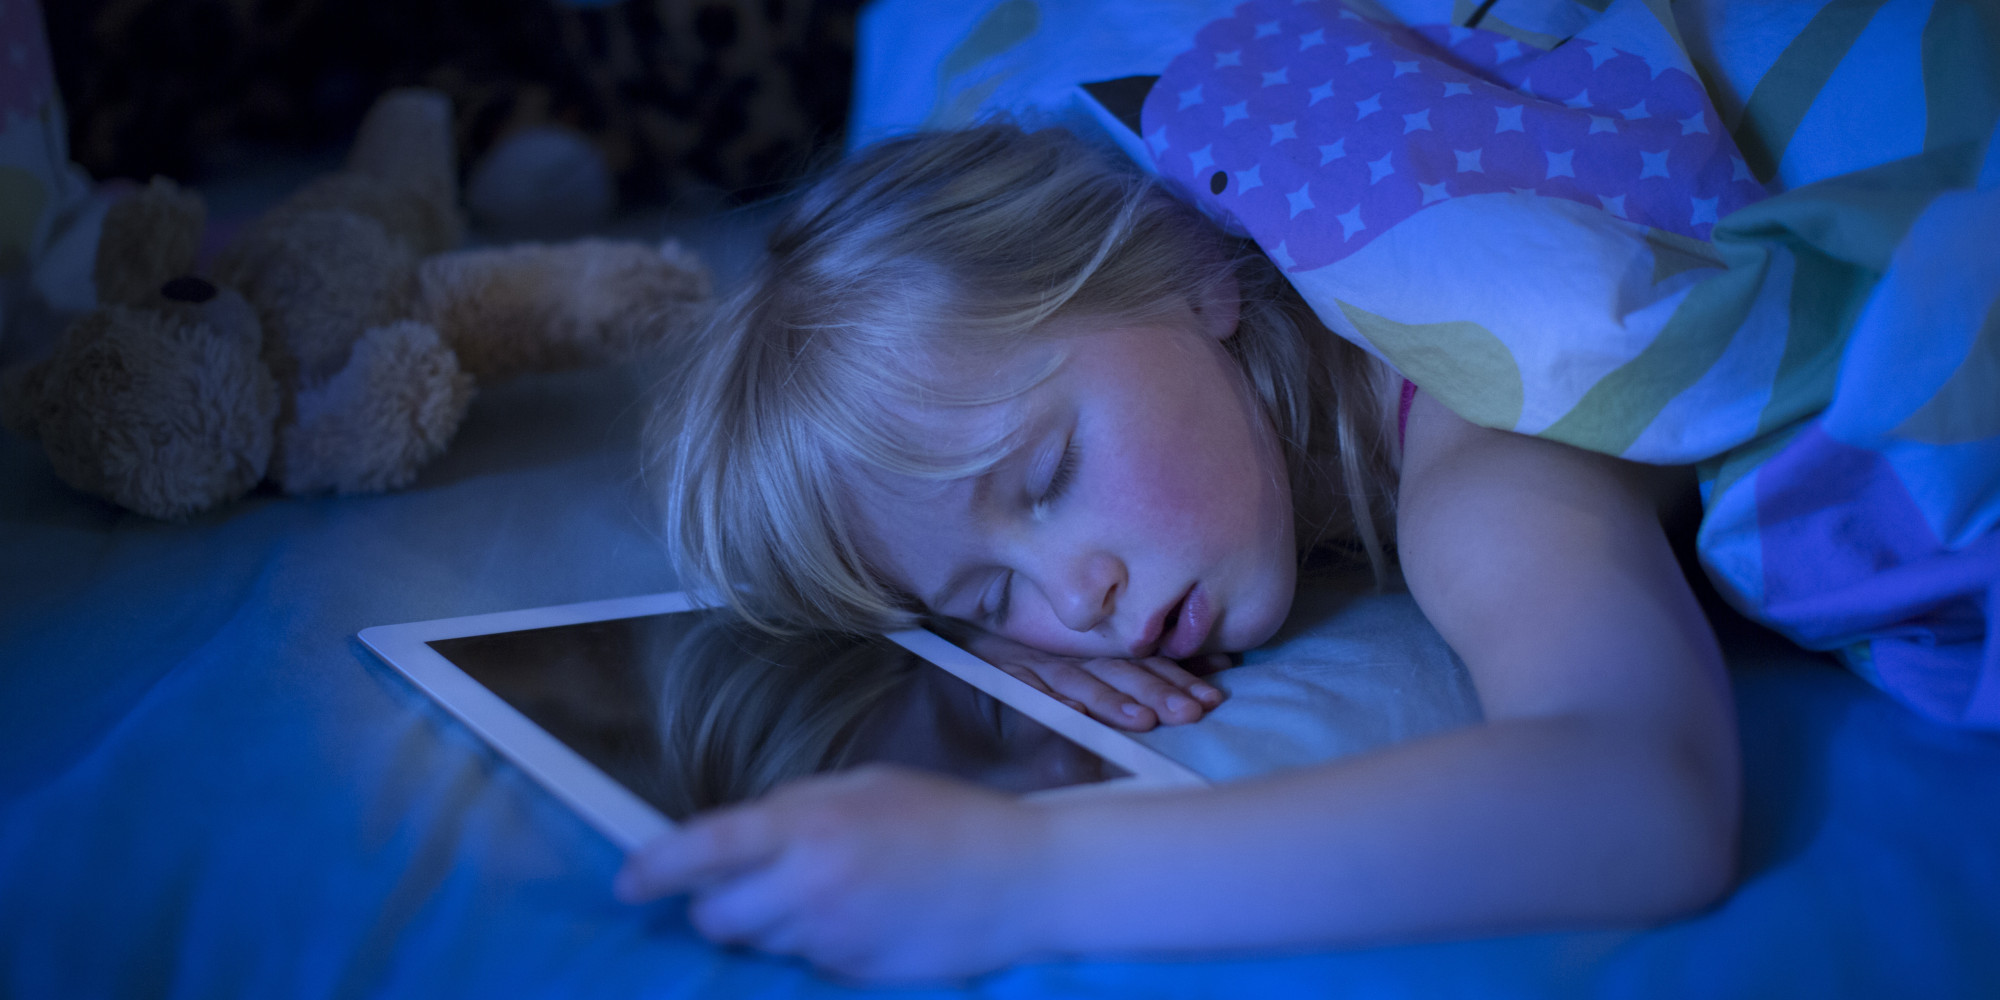 GIRL SLEEPING WITH TABLET COMPUTER